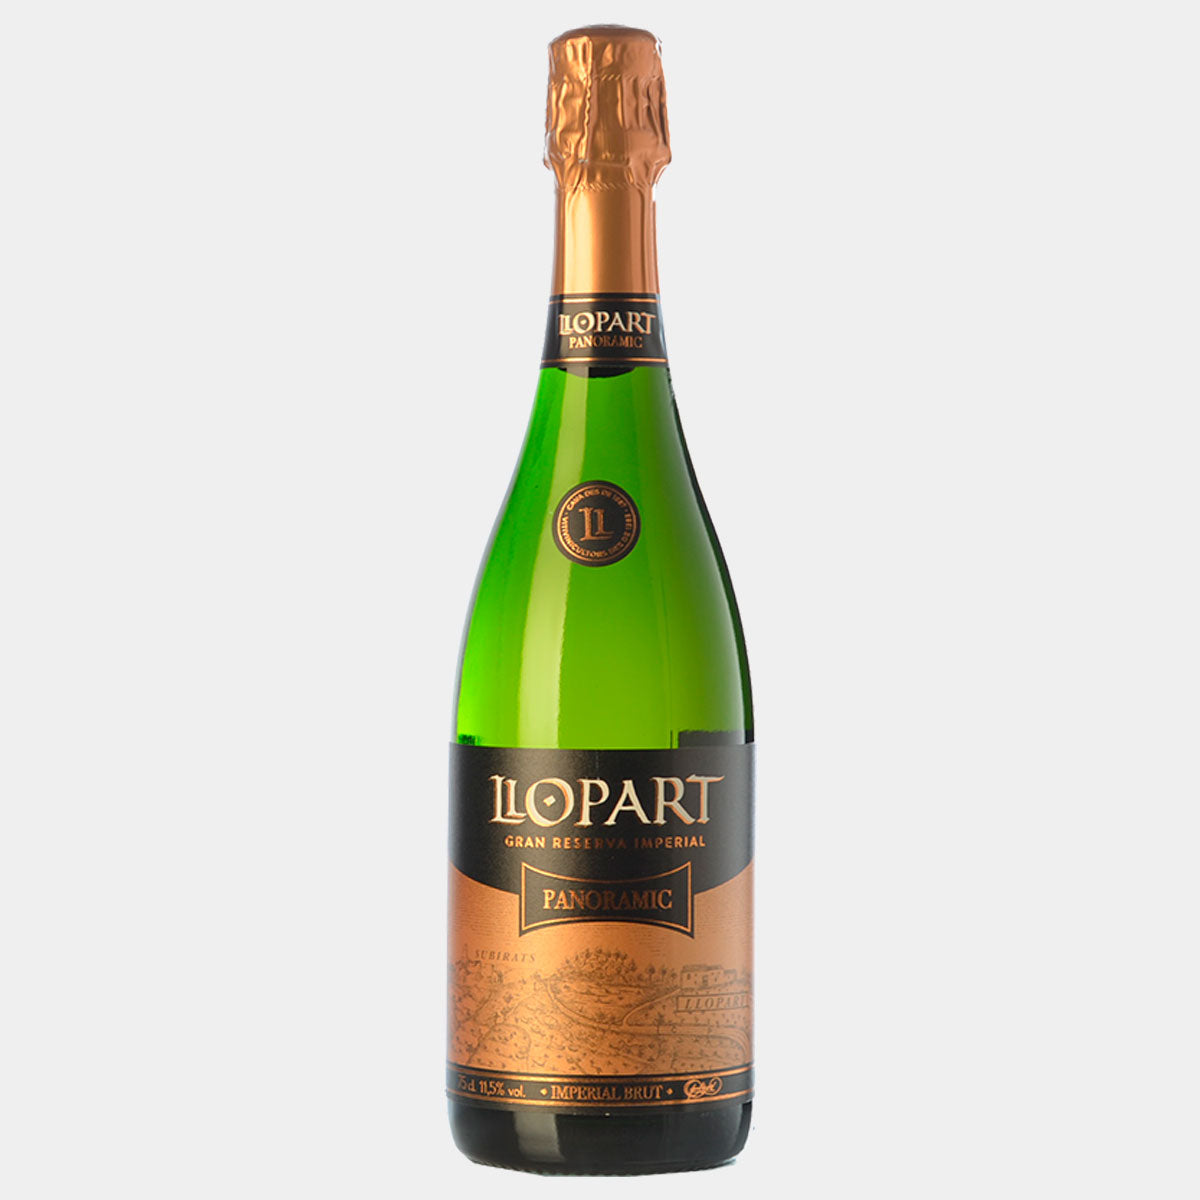 Llopart Panoramic Brut Gran Reserva 2013 - Wines and Copas Barcelona